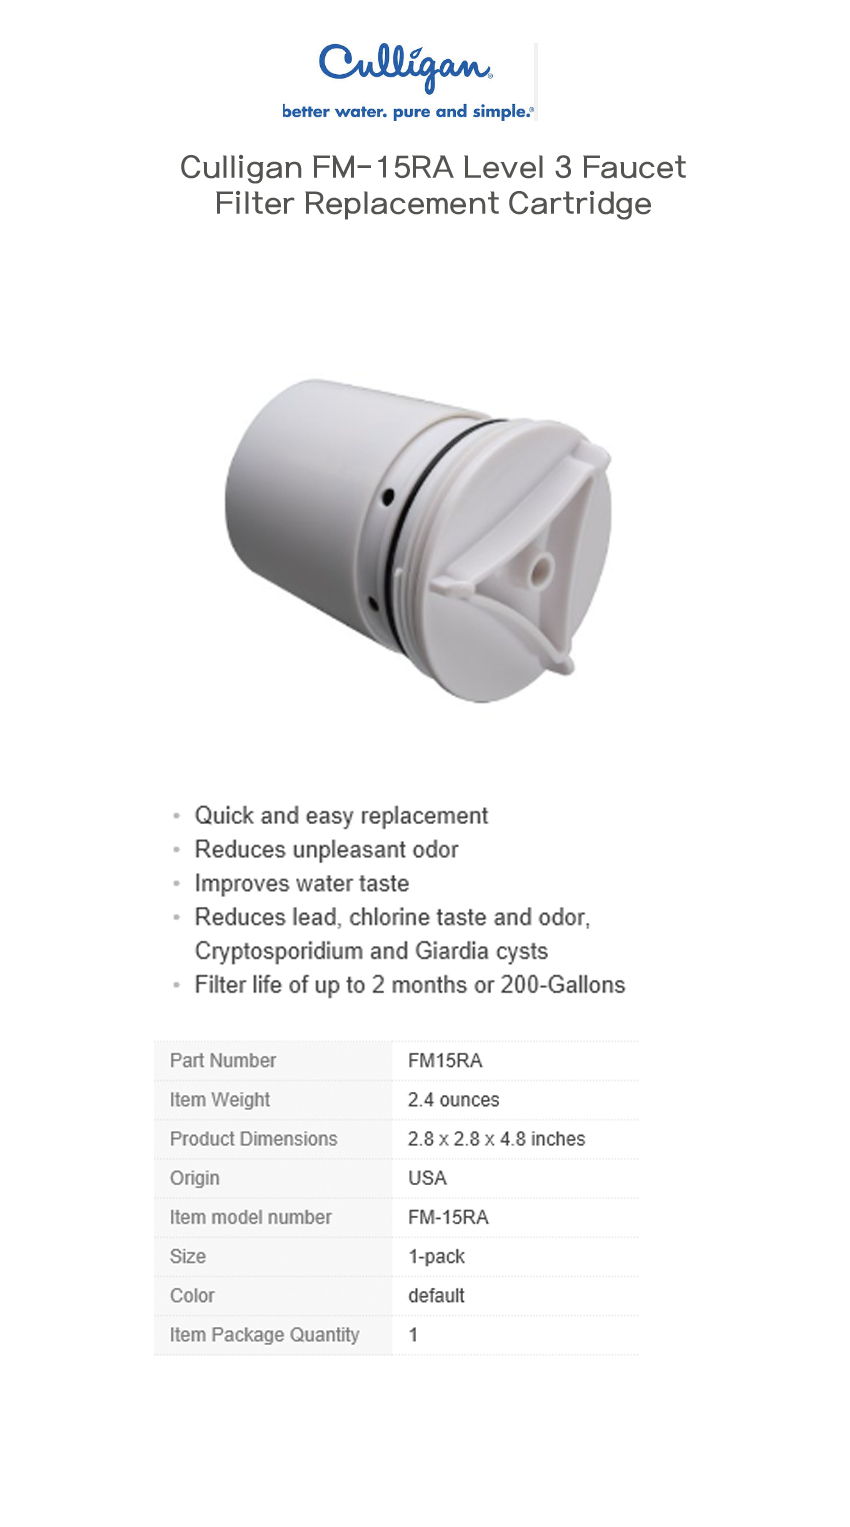 Awesome Culligan Fm 15ra Level 3 Faucet Filter Replacement Cartridge ...